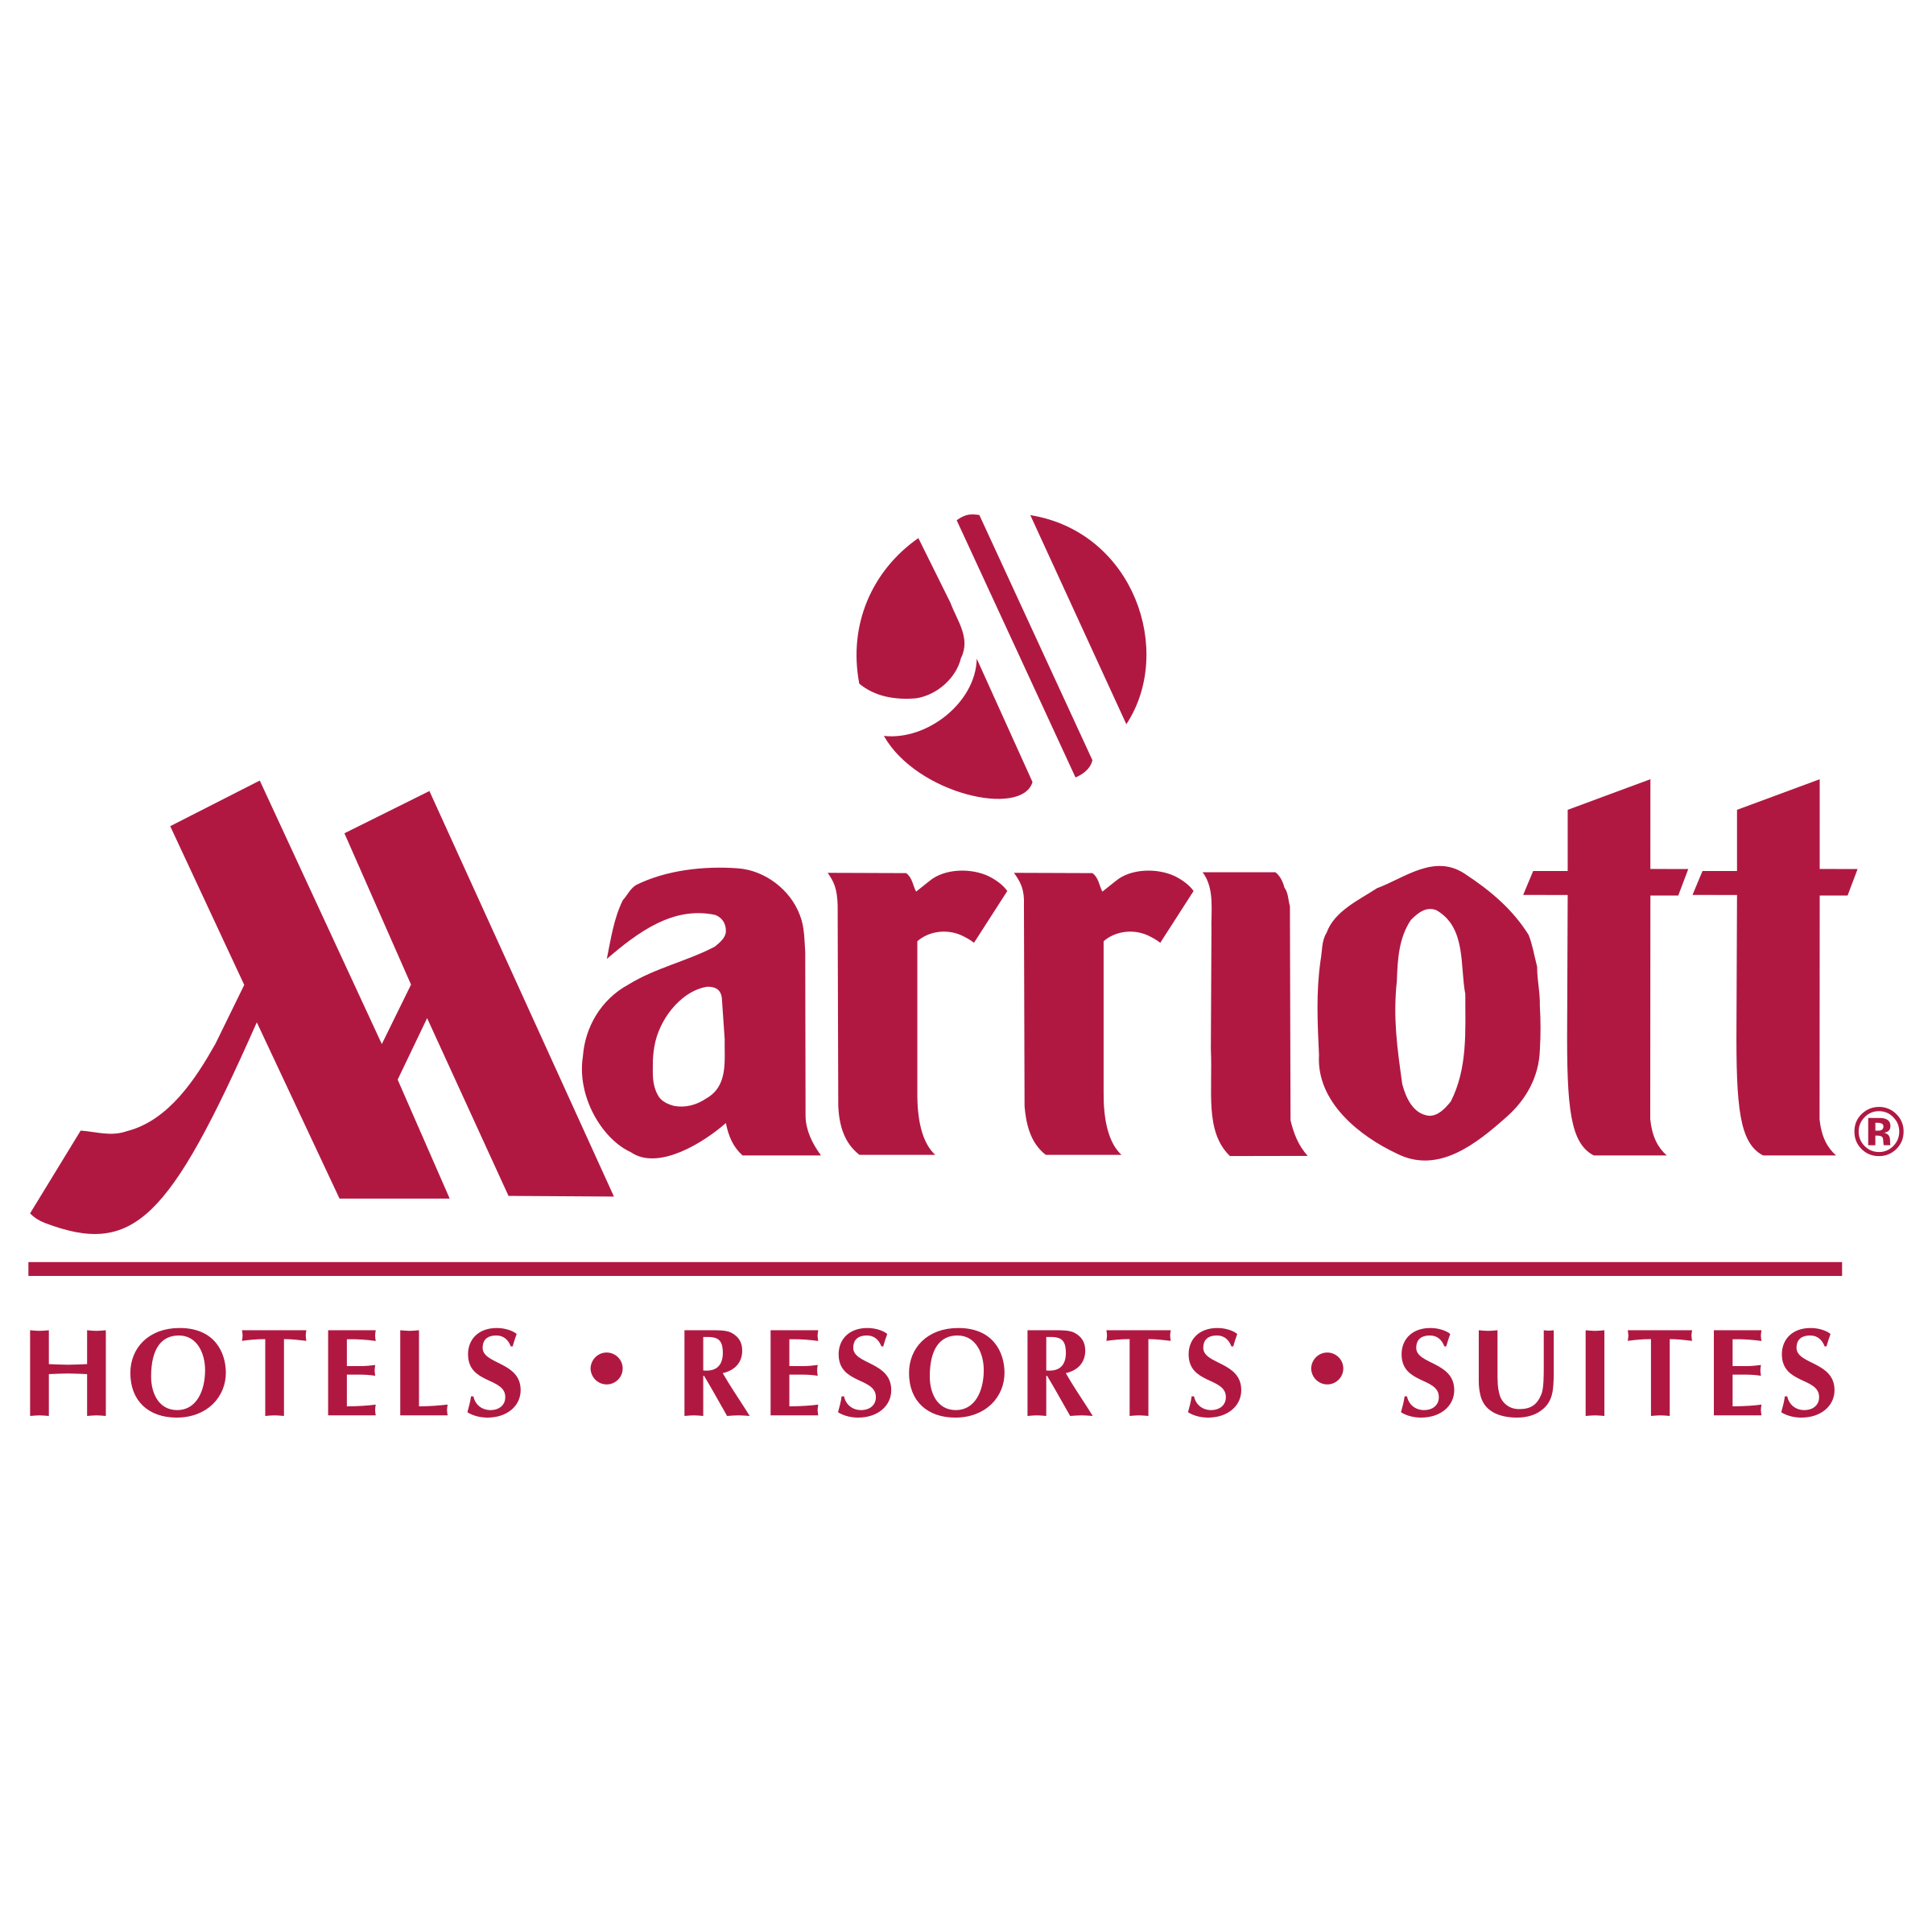 Marriott Hotels Resorts Suites Logo PNG Transparent